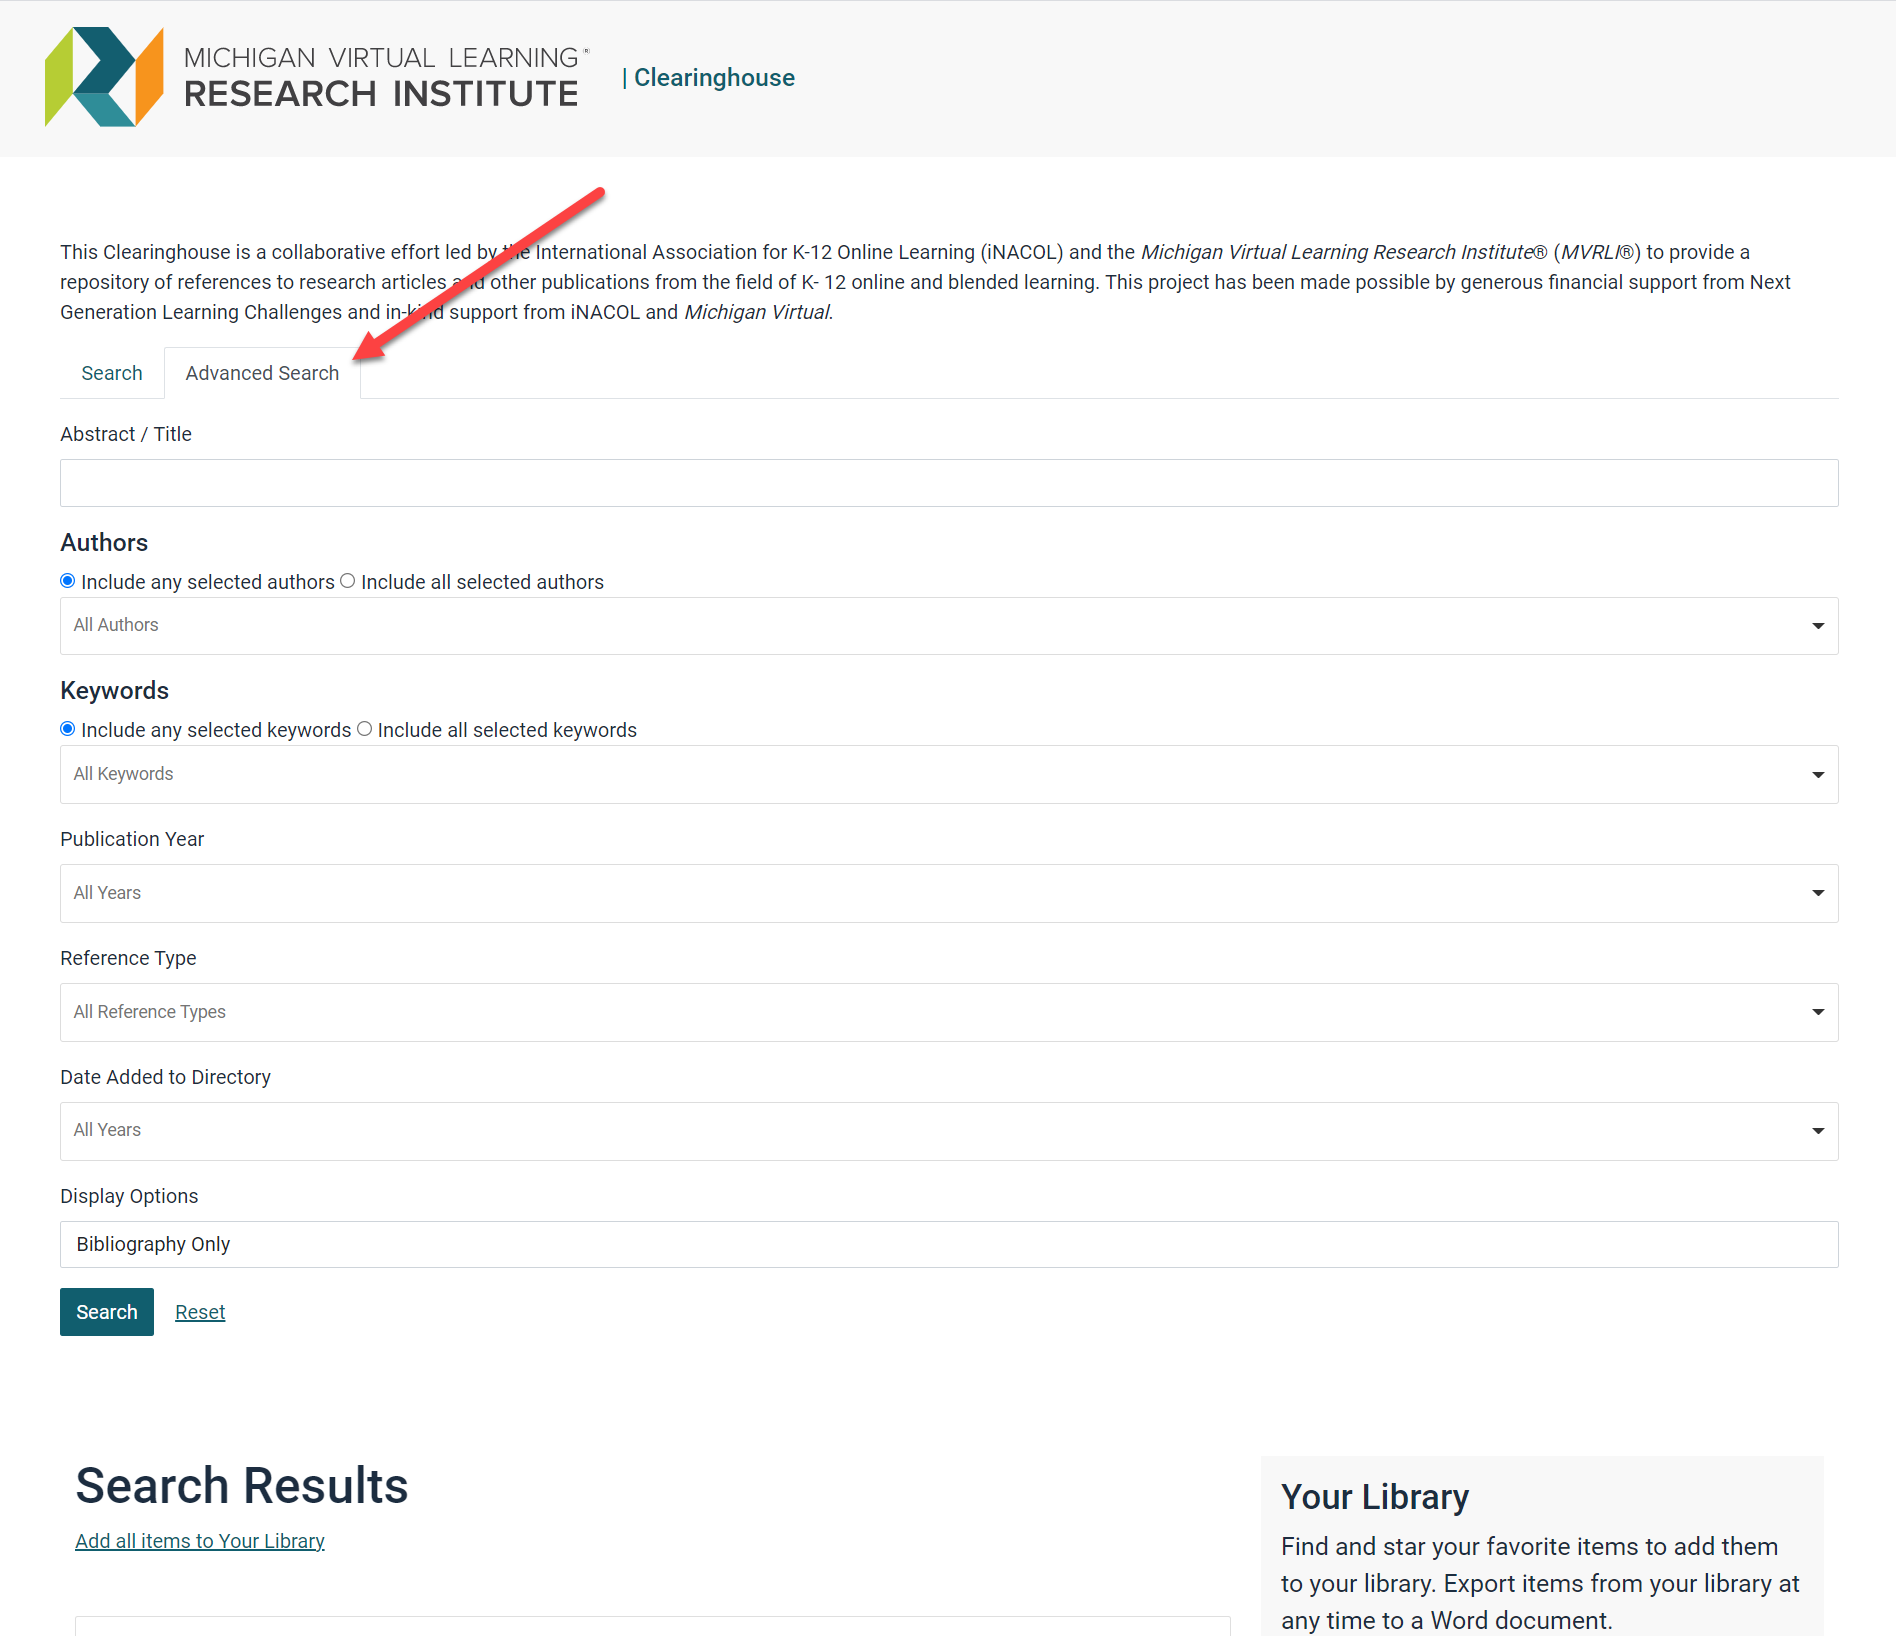 The Advanced Search tab is selected with an arrow pointing to it at the top of the page. Fields shown are as outlined below. The Search Results and Your Library sections are also displayed at the bottom of the page.